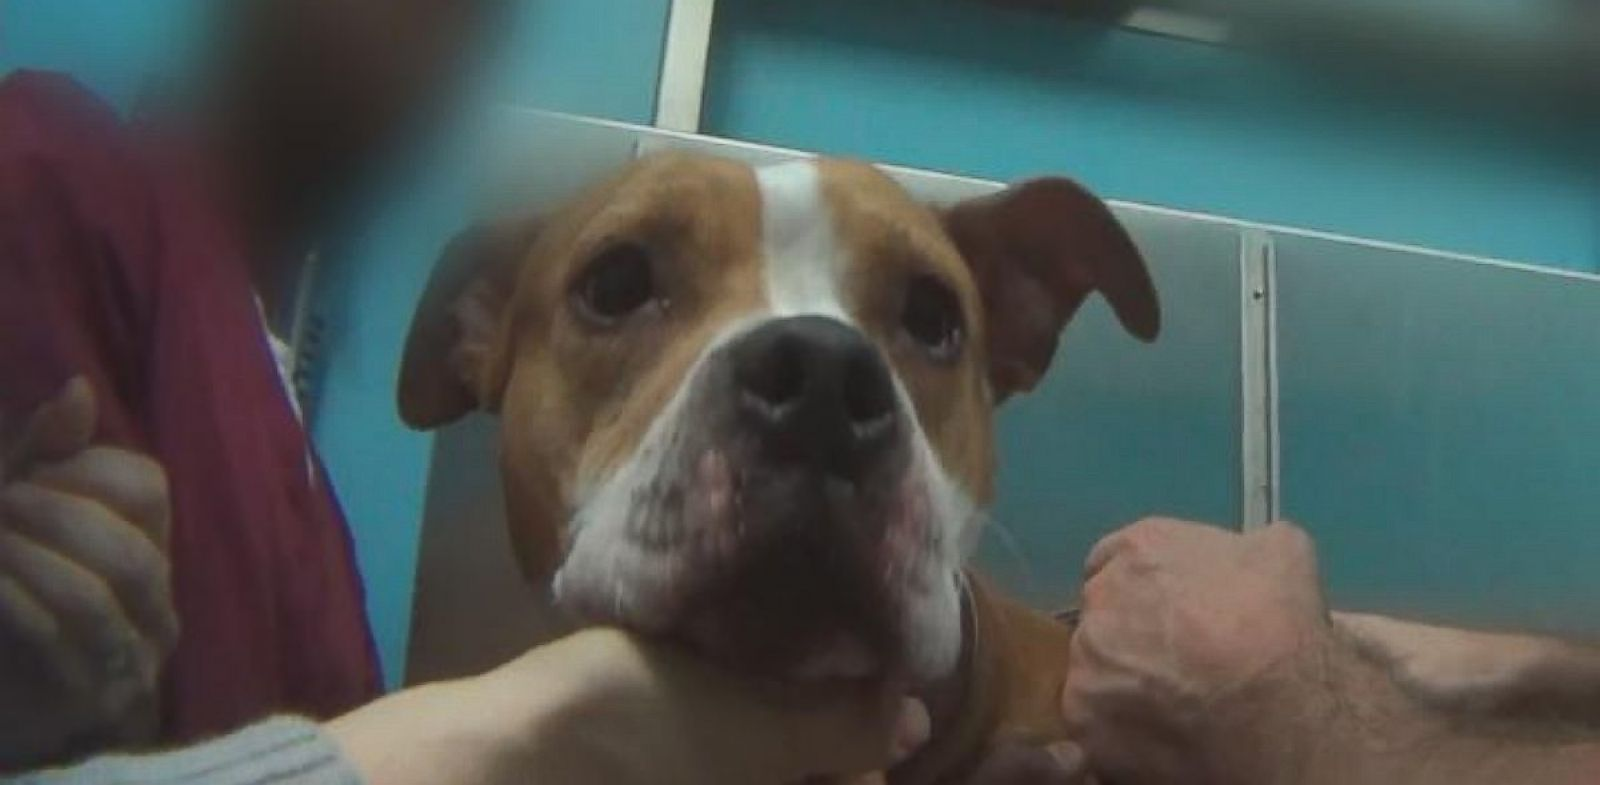 PHOTO: ABC News conducted an undercover investigation at vet clinics in New York and New Jersey, using two different dogs. In this photo, Honey, a 5-year-old pitbull, gets a check-up.